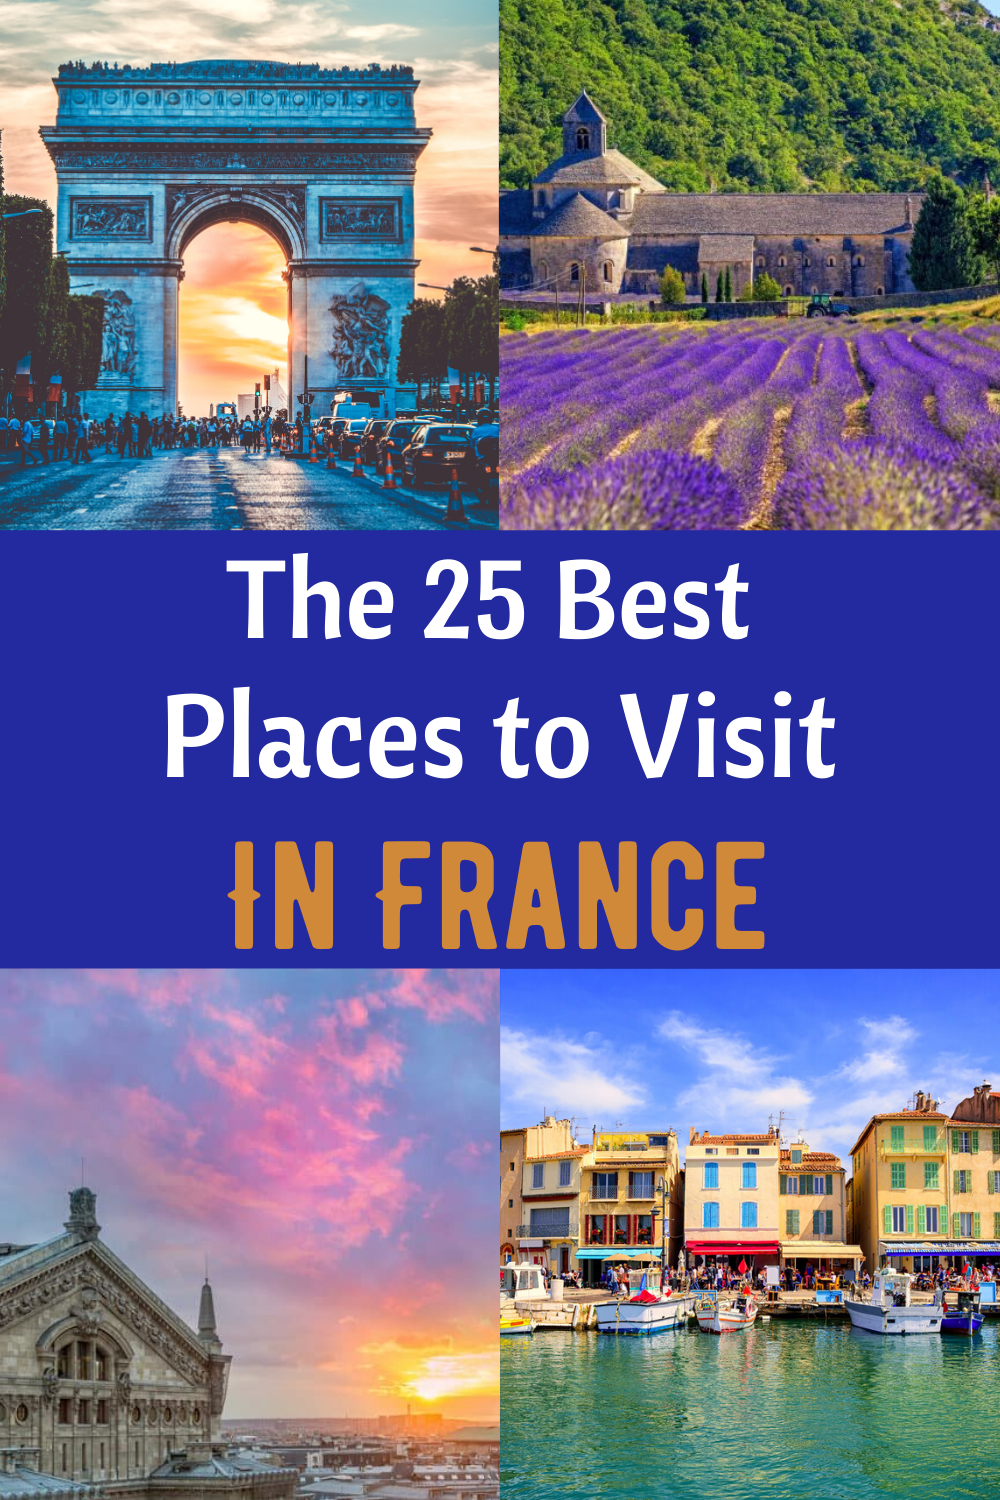 France Bucket List 25 Amazing Places To Visit In France Cool Places To Visit Places To Visit France Travel